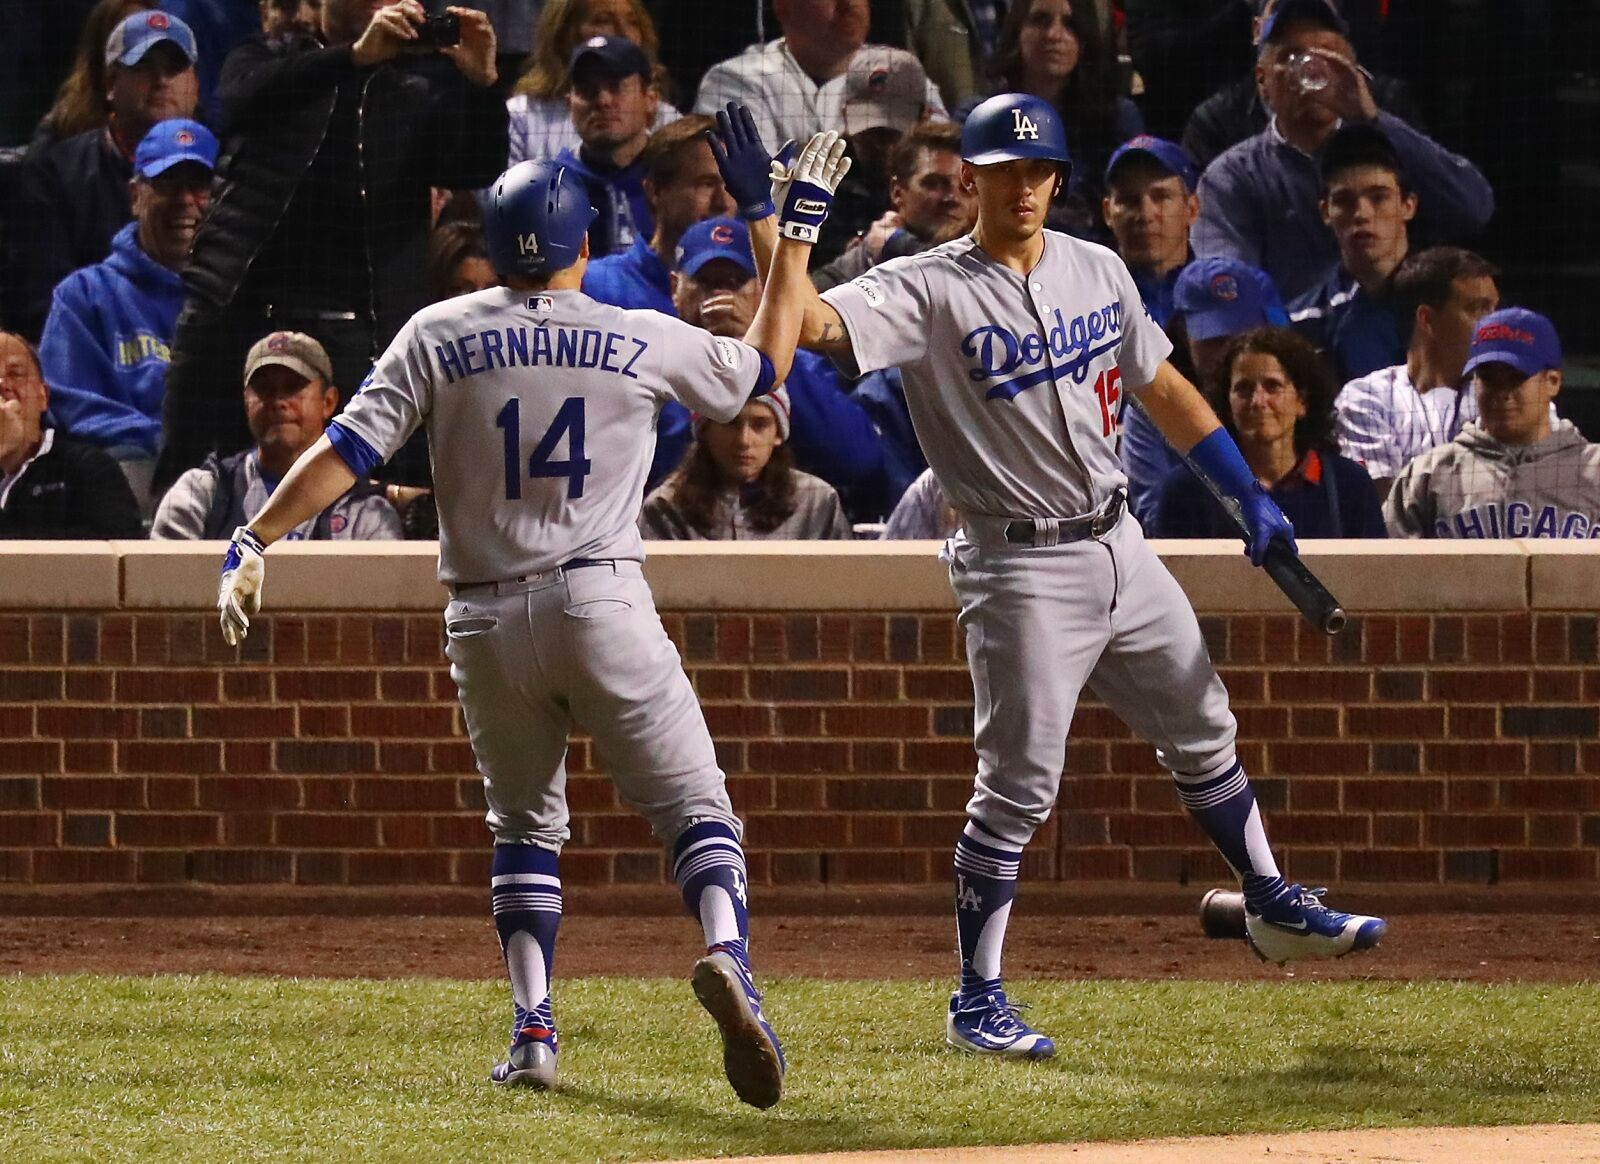 863224282-league-championship-series-los-angeles-dodgers-v-chicago-cubs-game-five.jpg